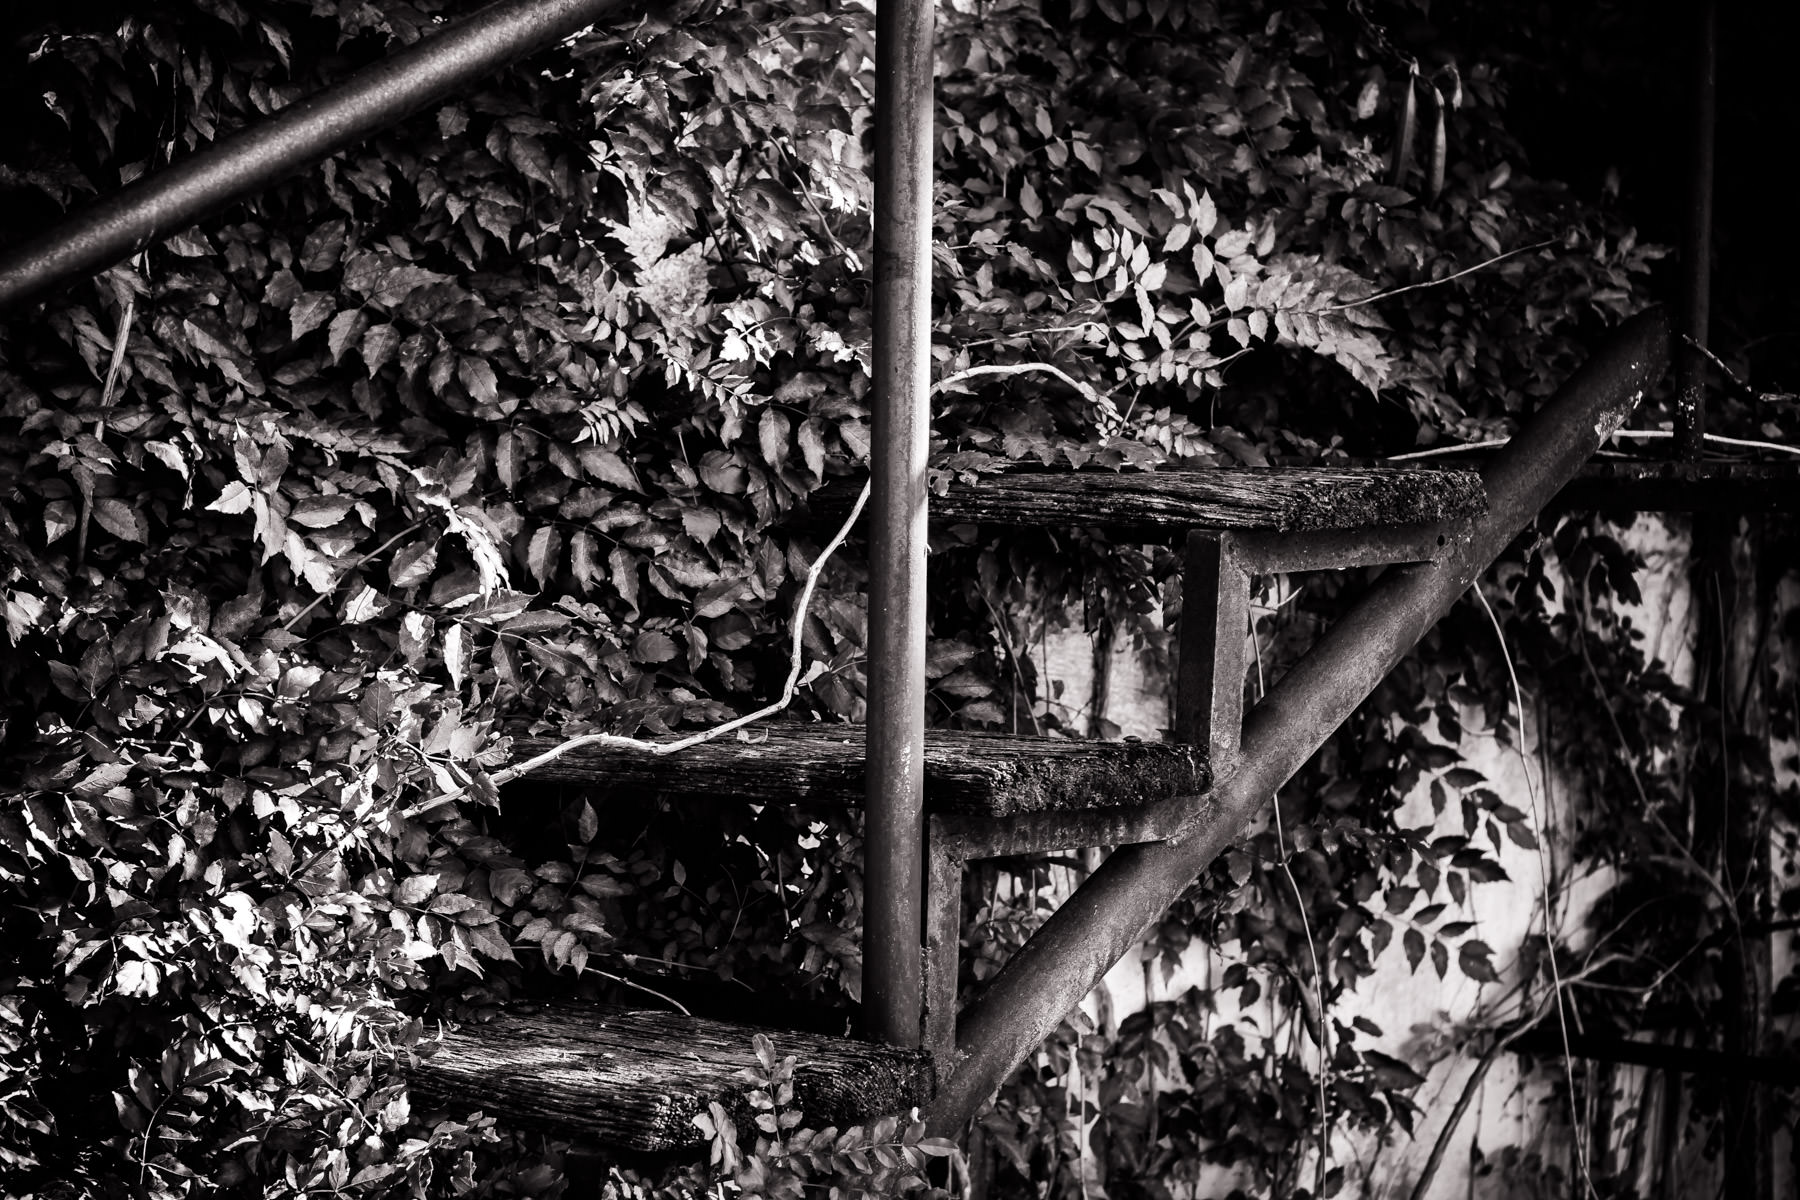 Vines grow over a staircase in Downtown Pilot Point, Texas.